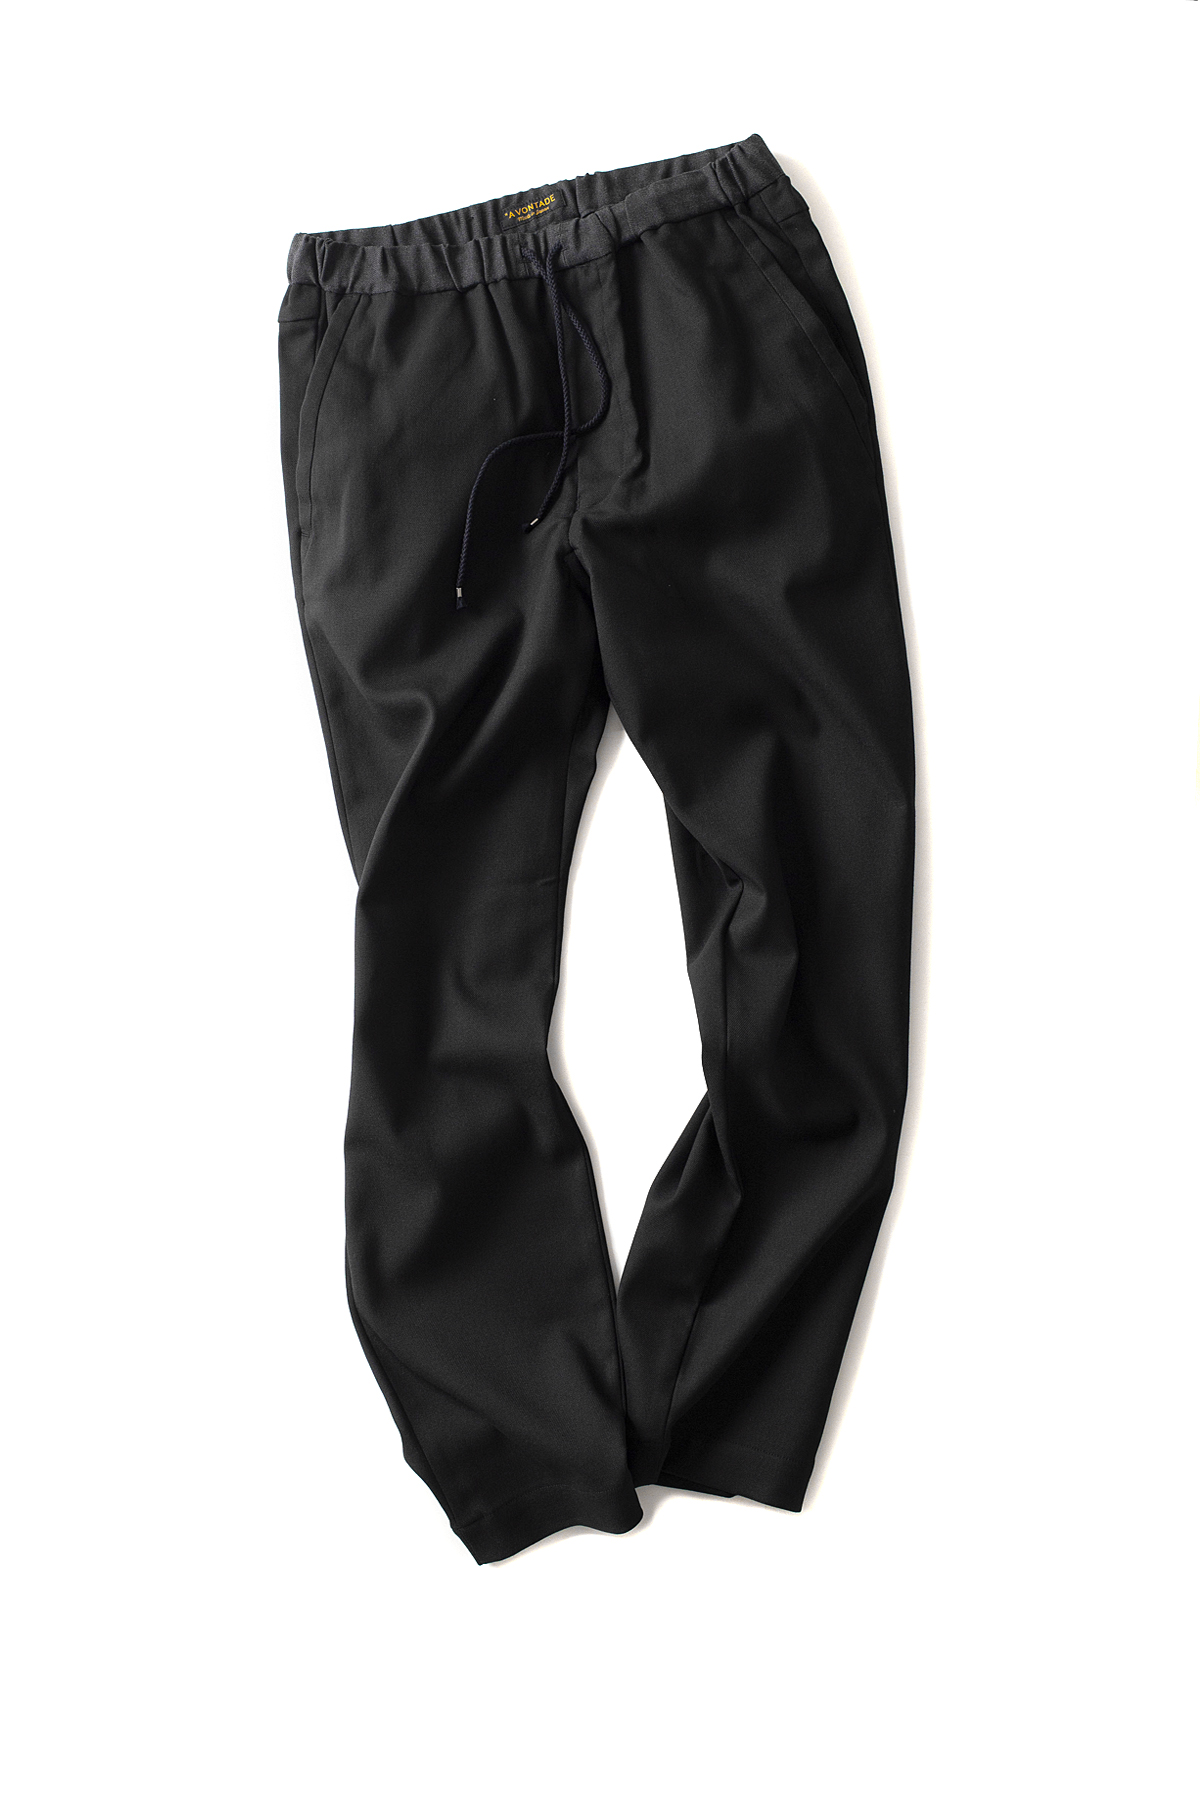 A vontade : Slim Easy Slacks (Black)